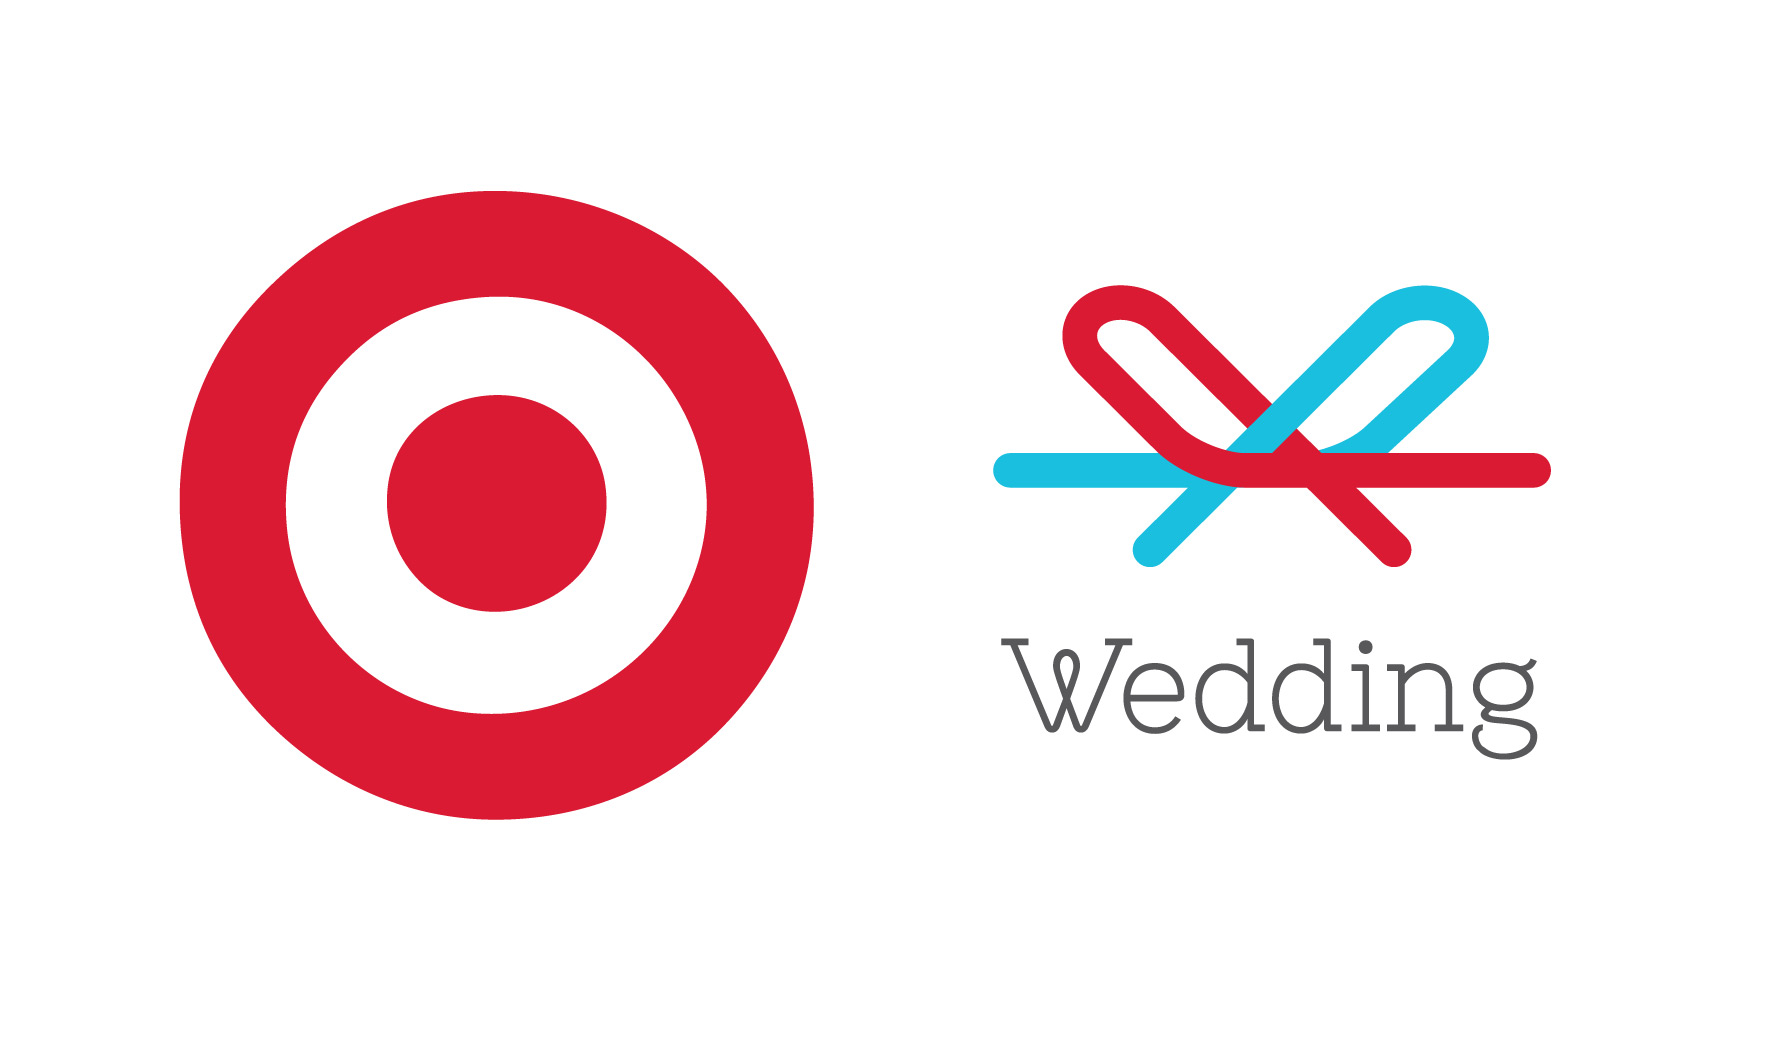 USD20 Target Gift Card With Wedding Registry 2015 : Visakh Menon : Art Direction & Branding Design : NEW YORK - 1776x1043 ...